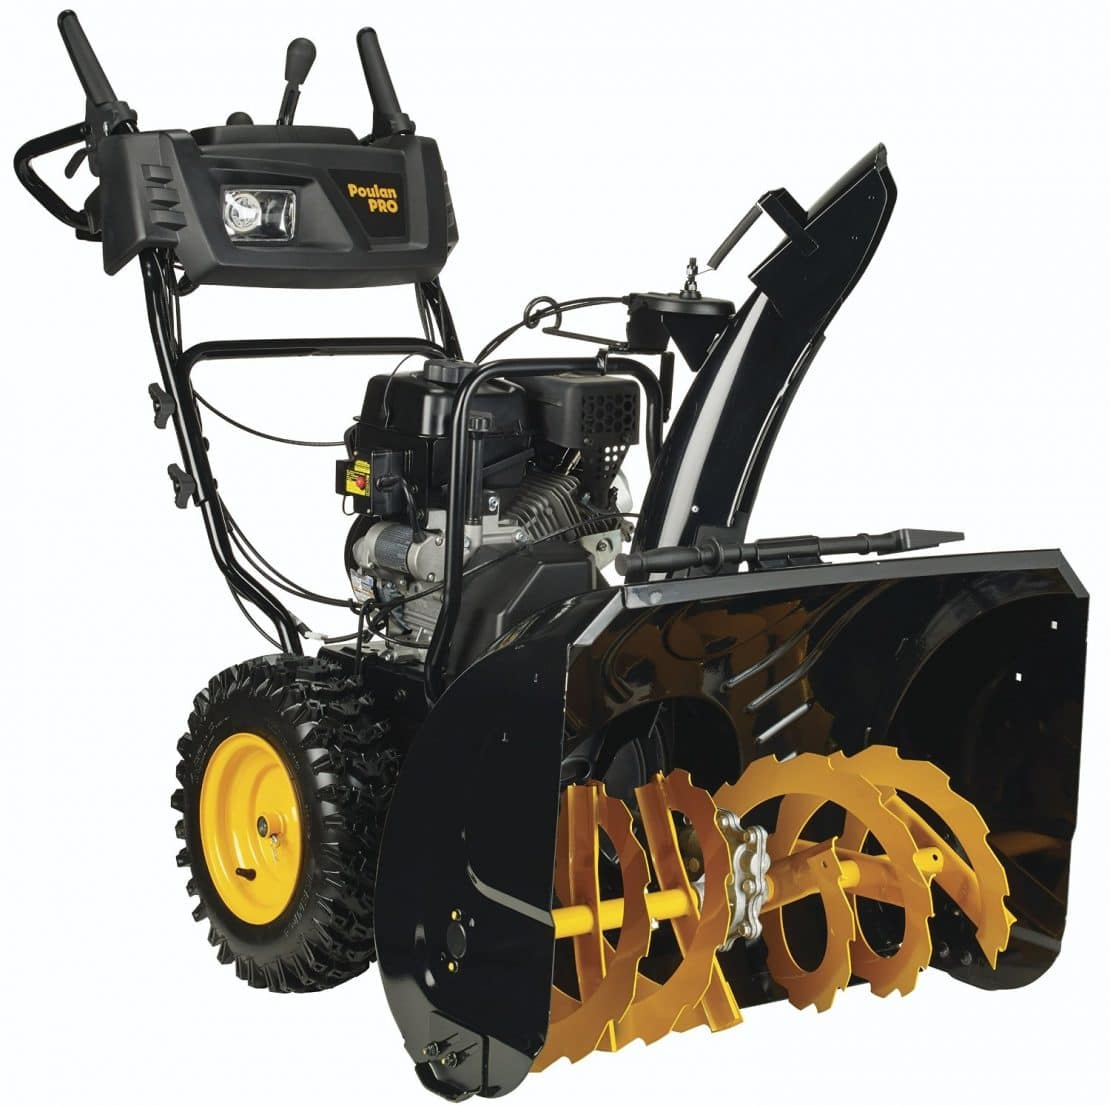 2015 Poulan Pro 2-Stage Snow Blowers - My Review